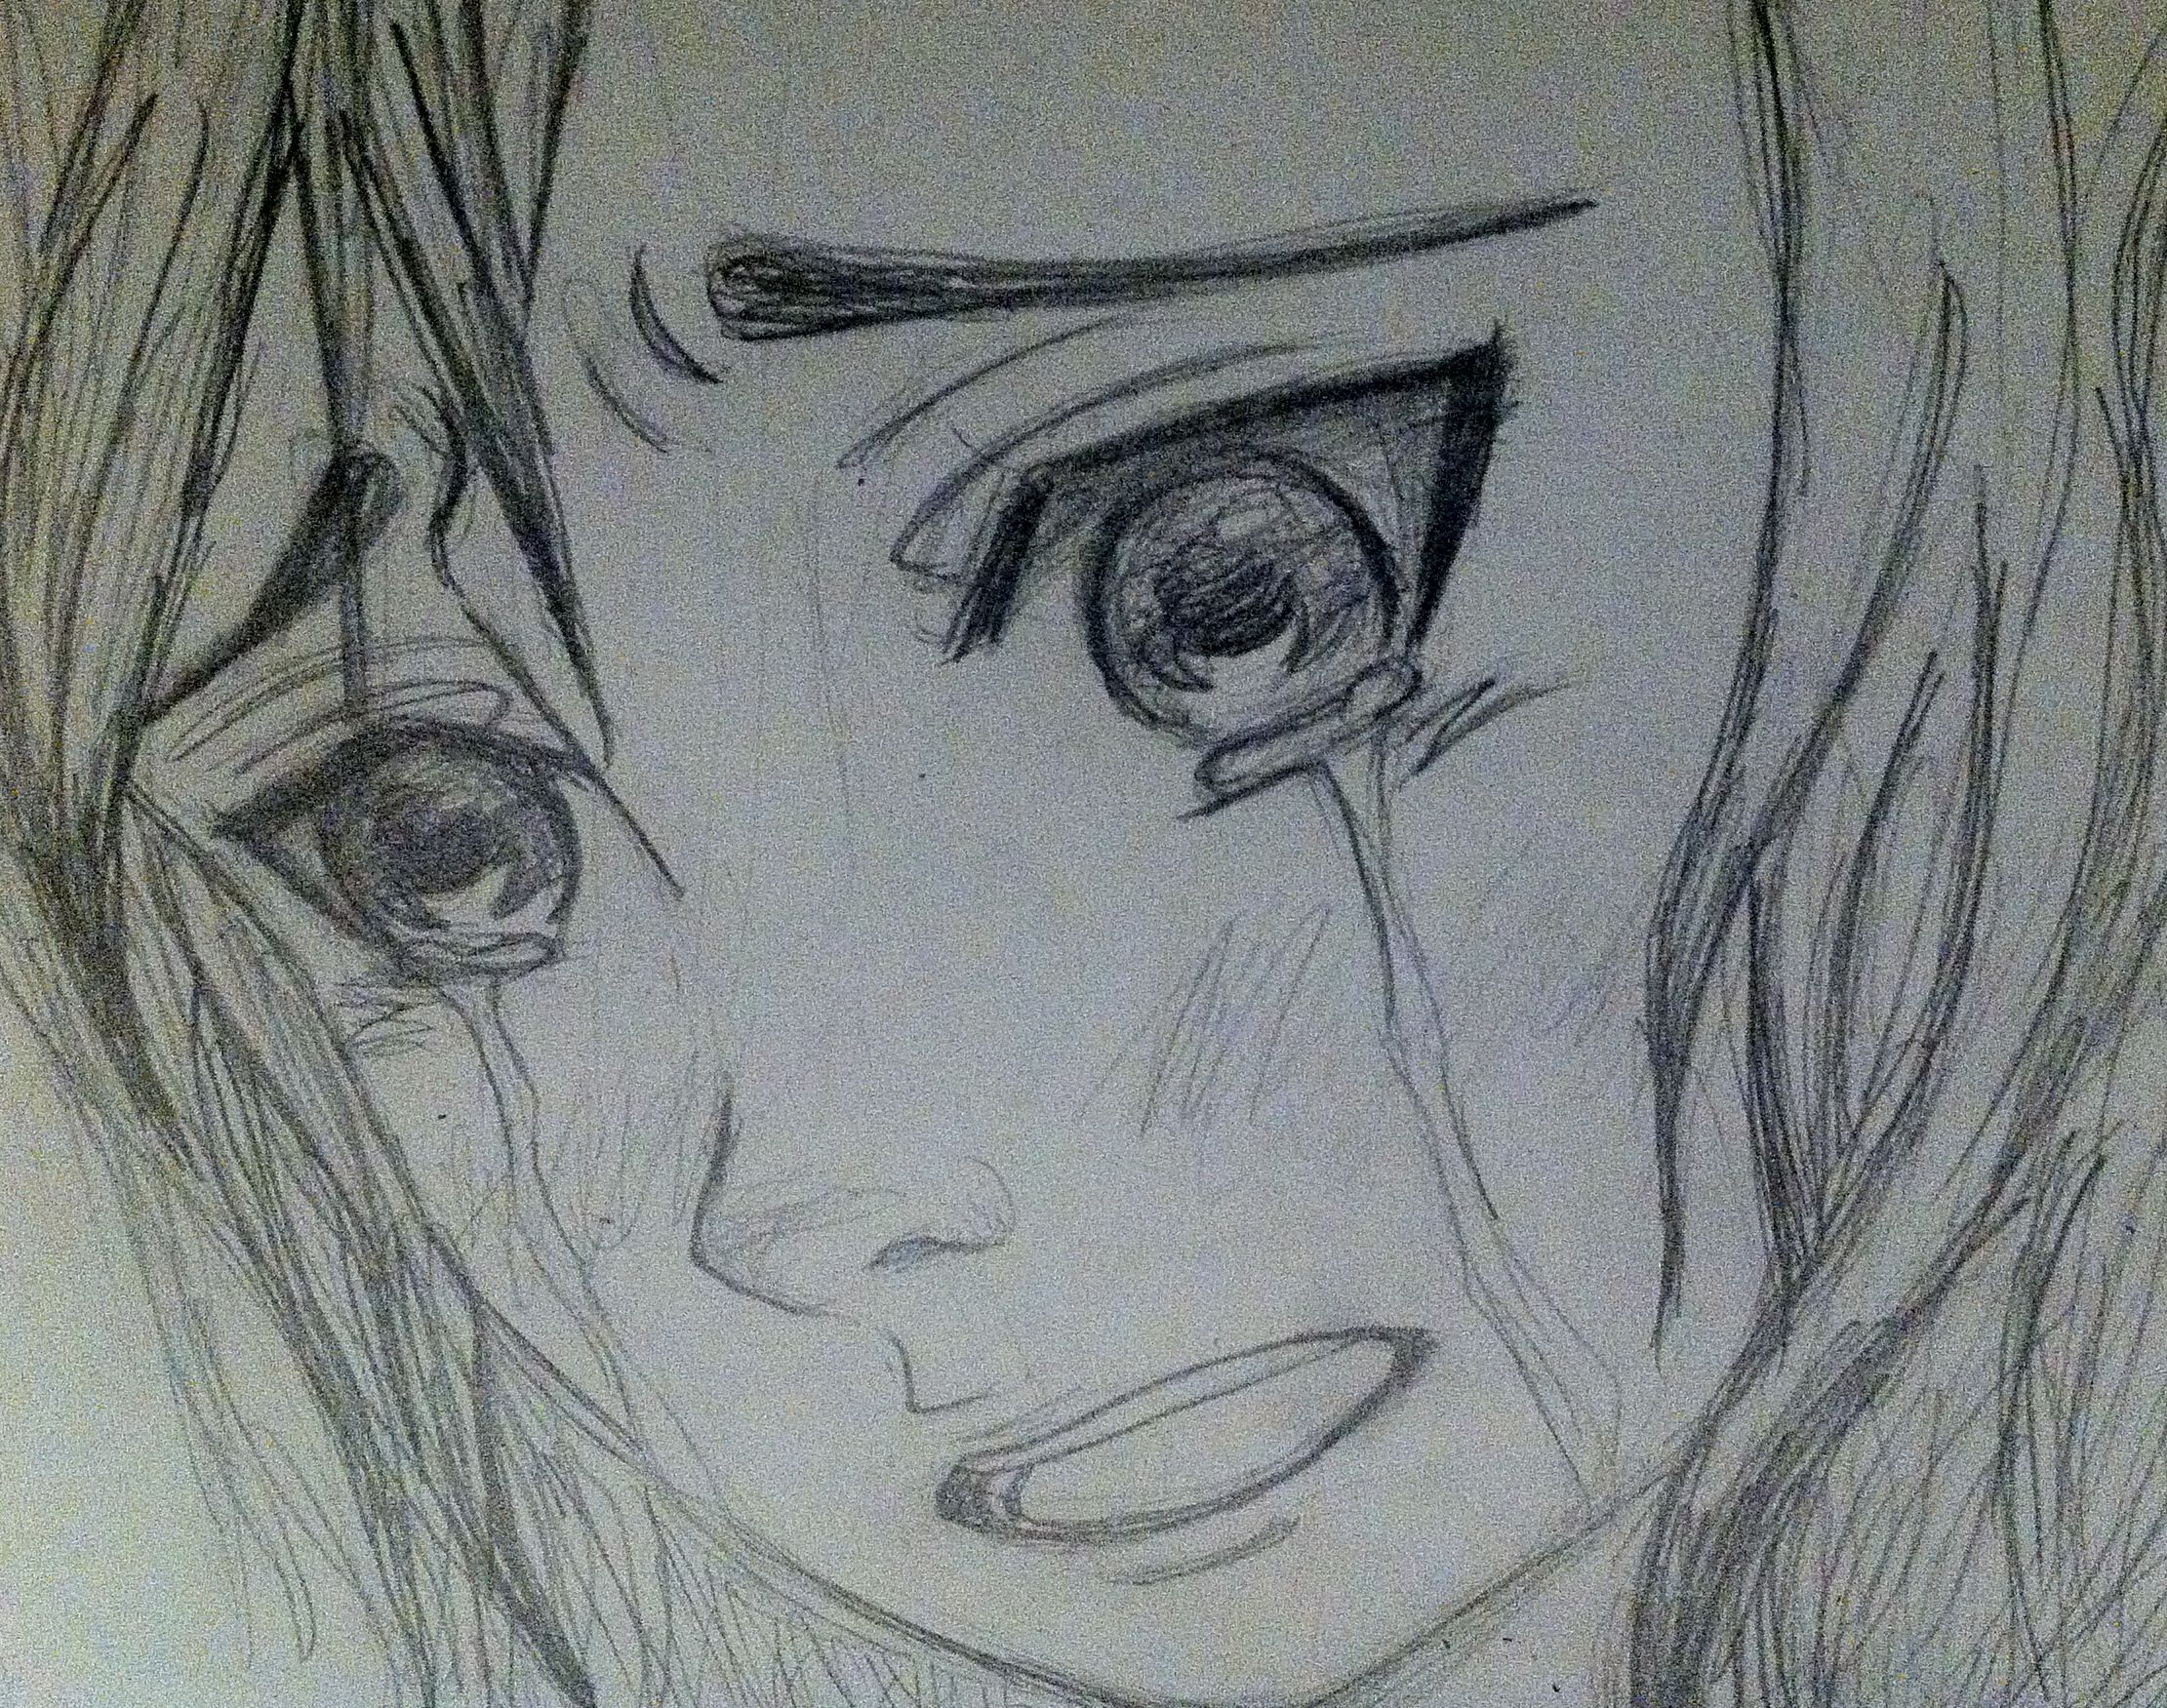 drawing of a anime girl crying face - Google Search | Art ...